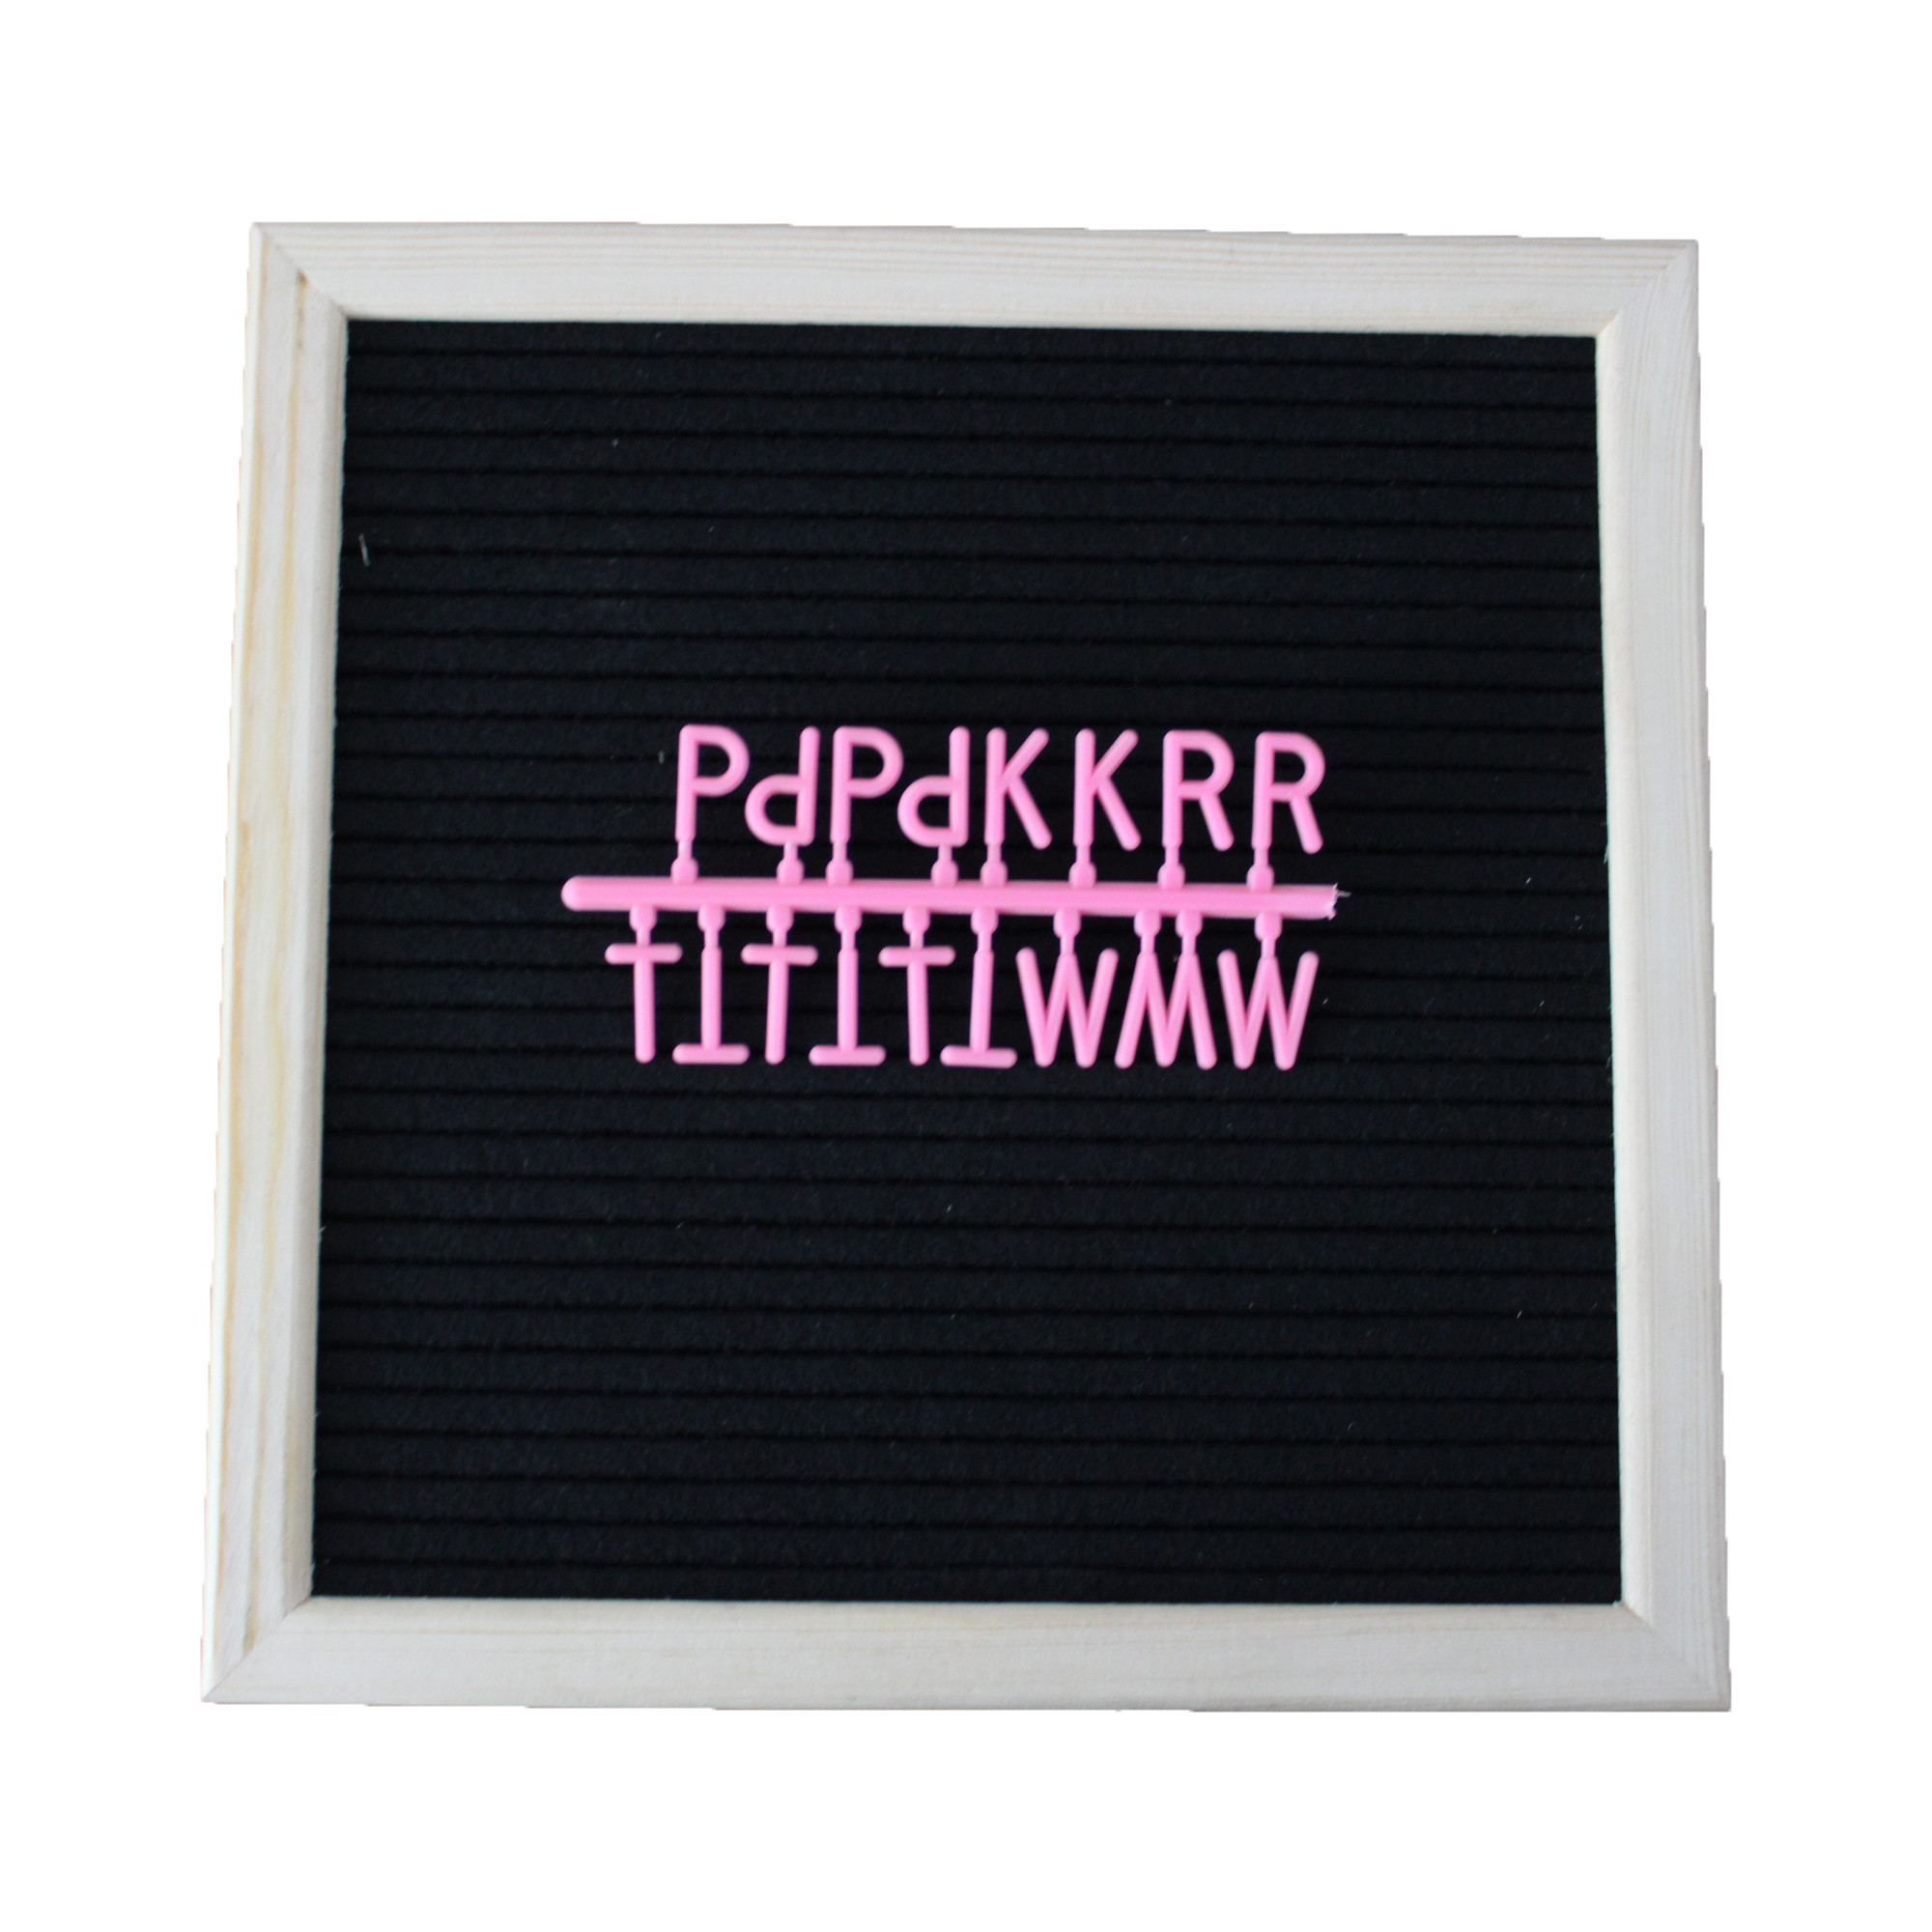 2019 hot sale 10 <strong>x10</strong> black changeable felt letter display board organizer